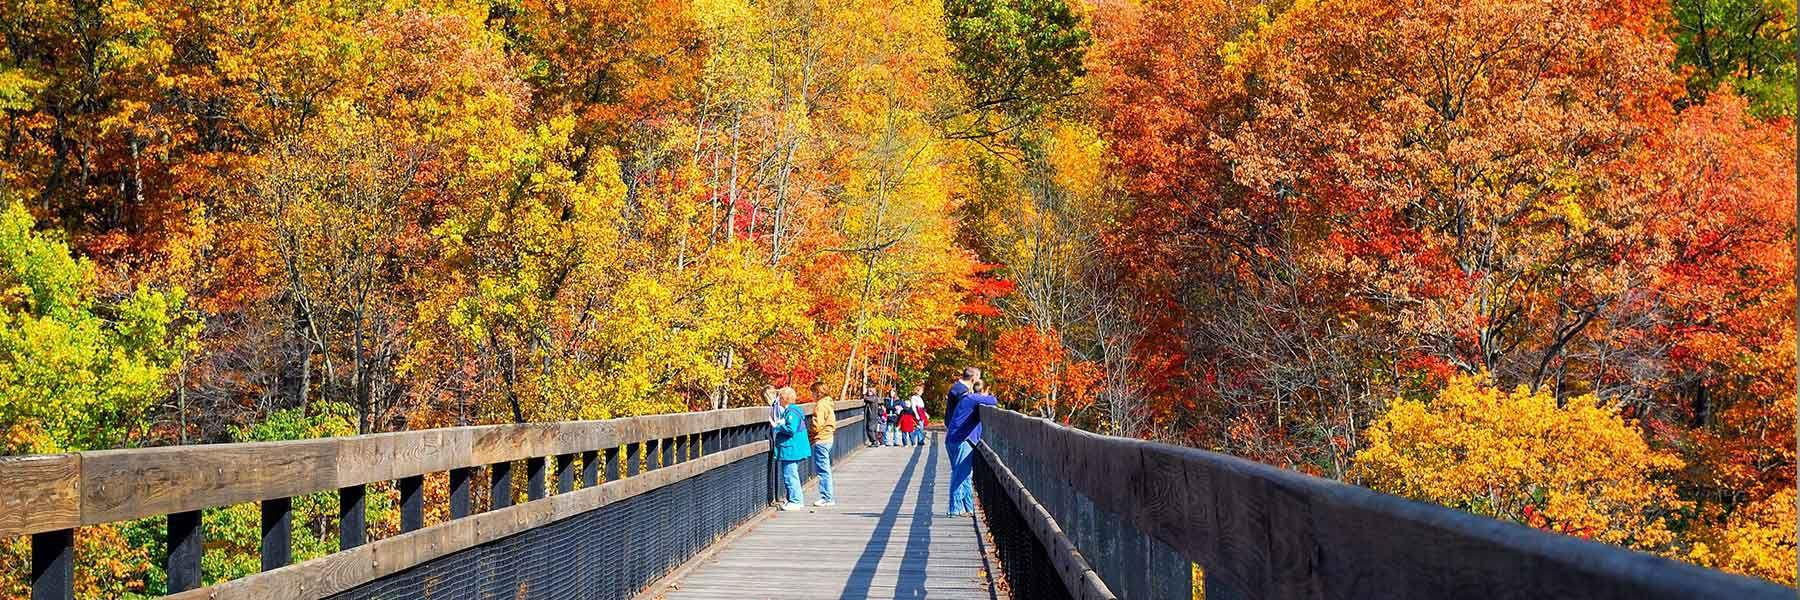 Things To Do In Fall Laurel Highlands Pa